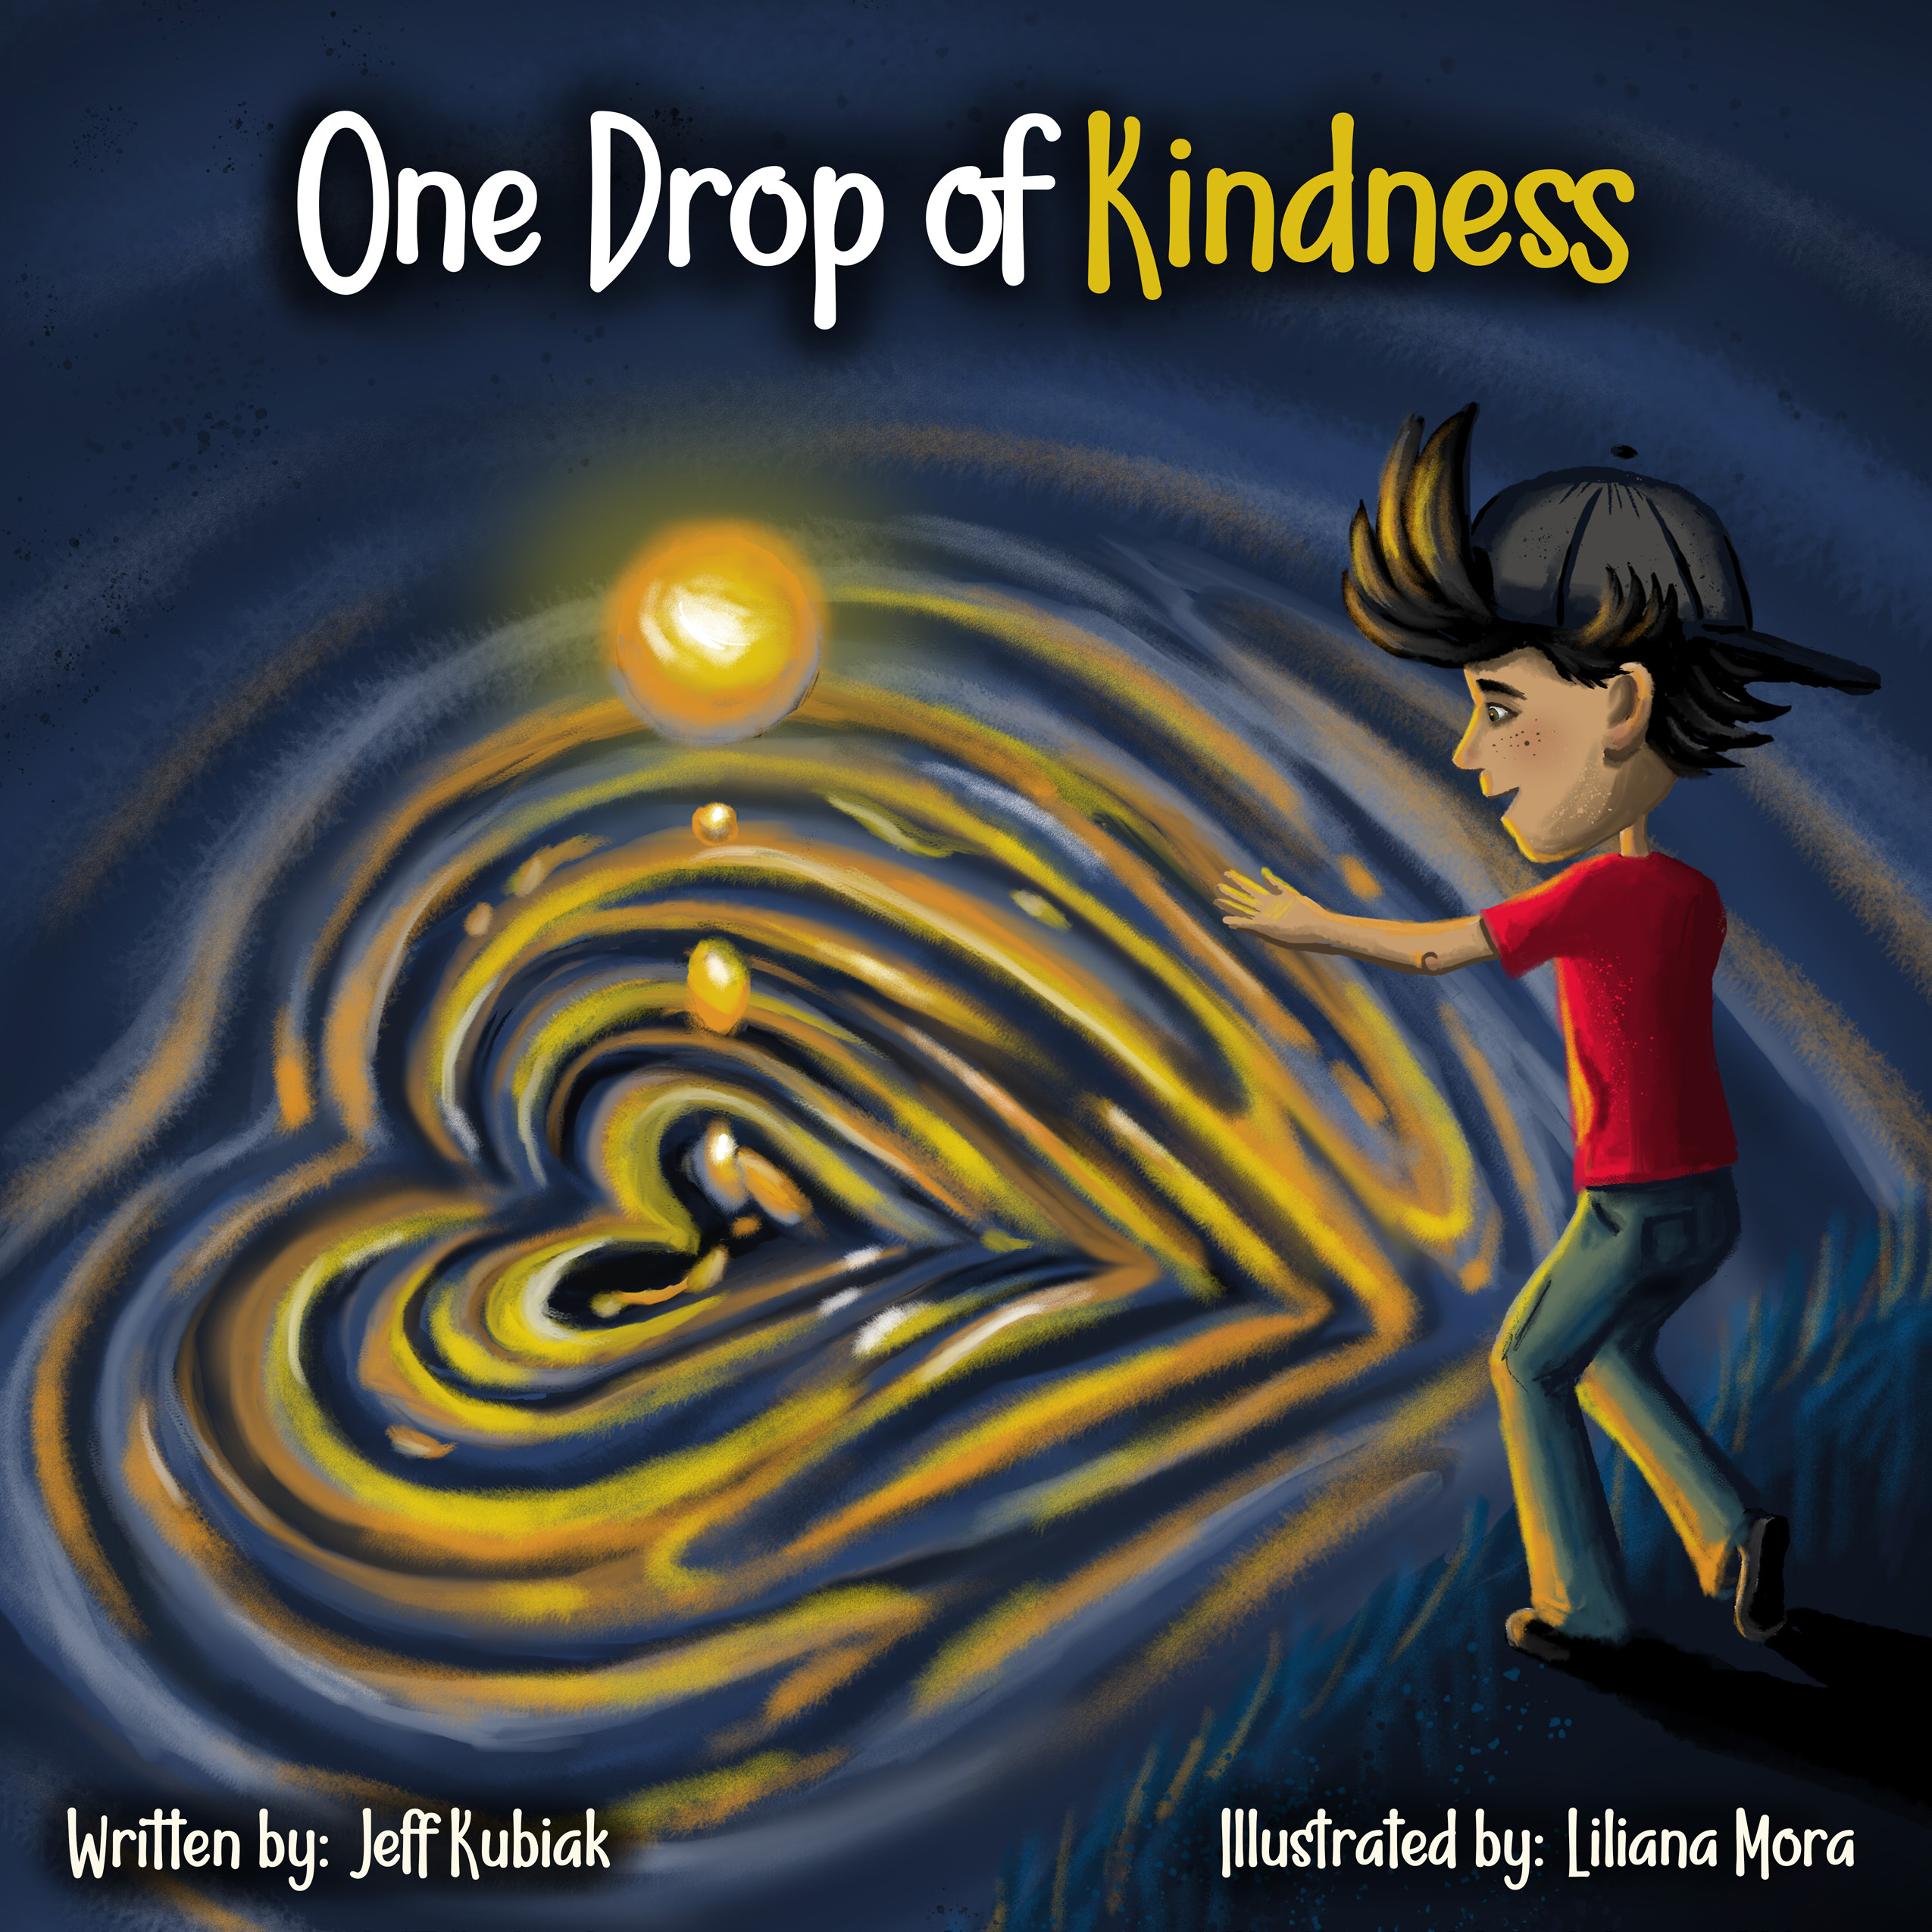 One Drop of Kindness by Jeff Kubiak